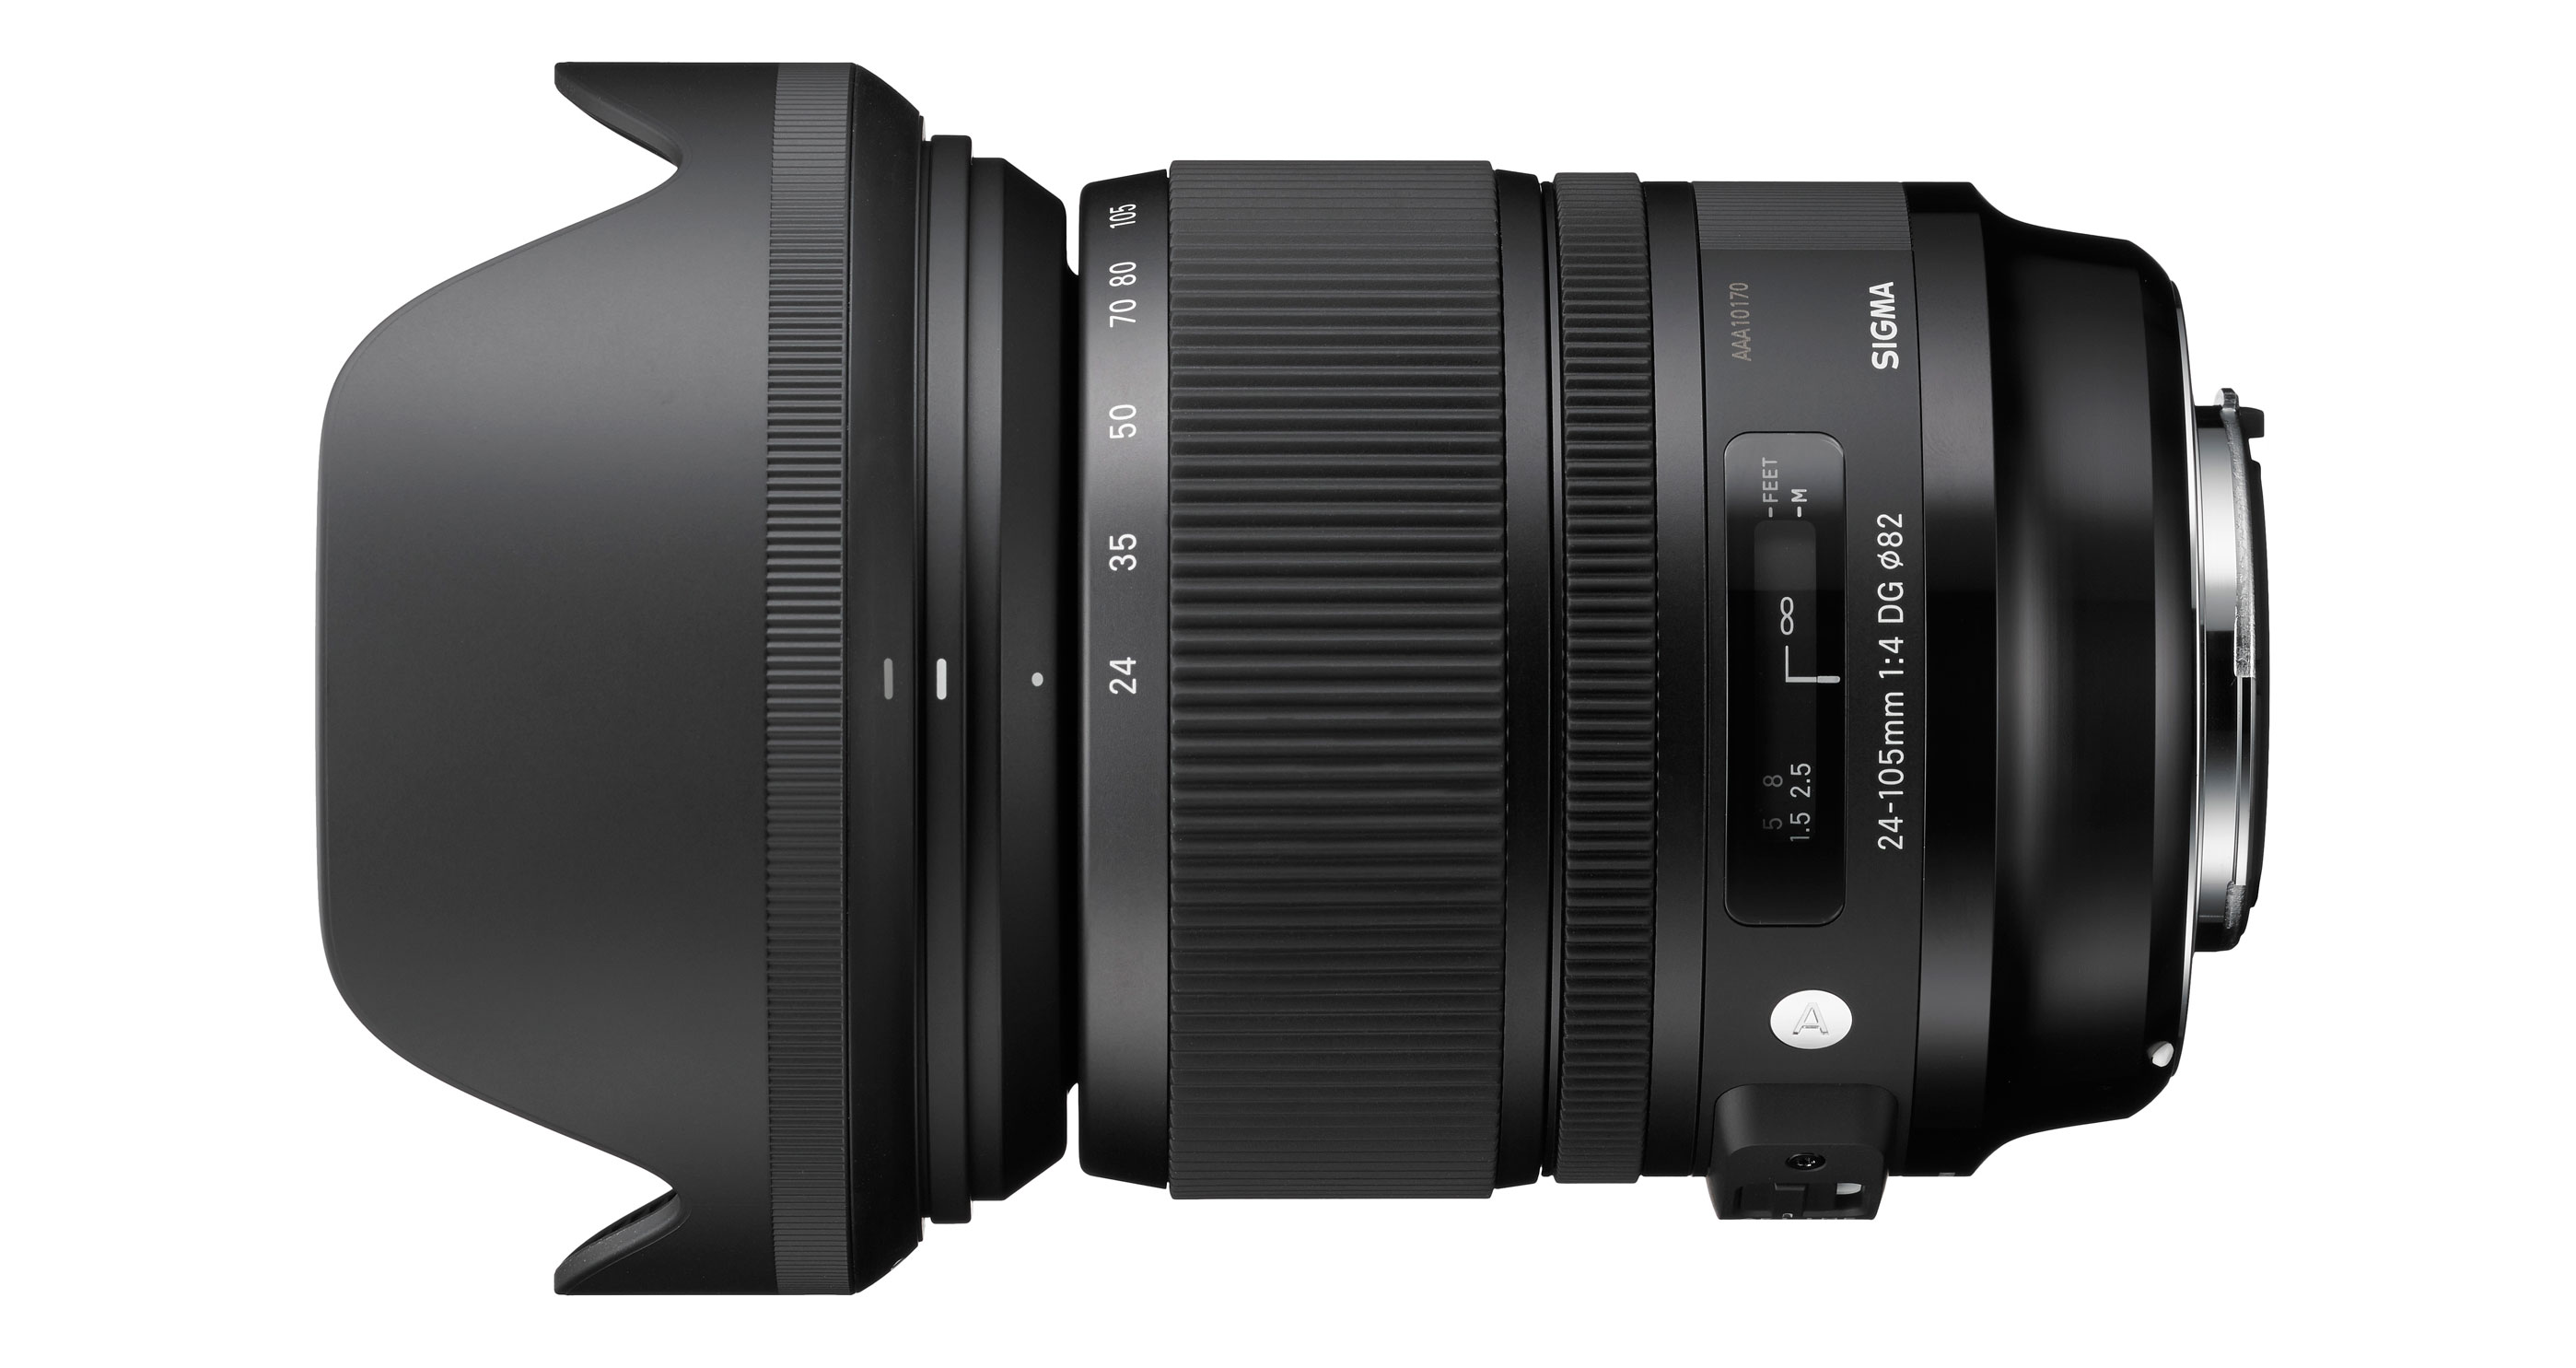 Sigma's 24-105mm F4 DG OS HSM with its petal-shaped lens hood.